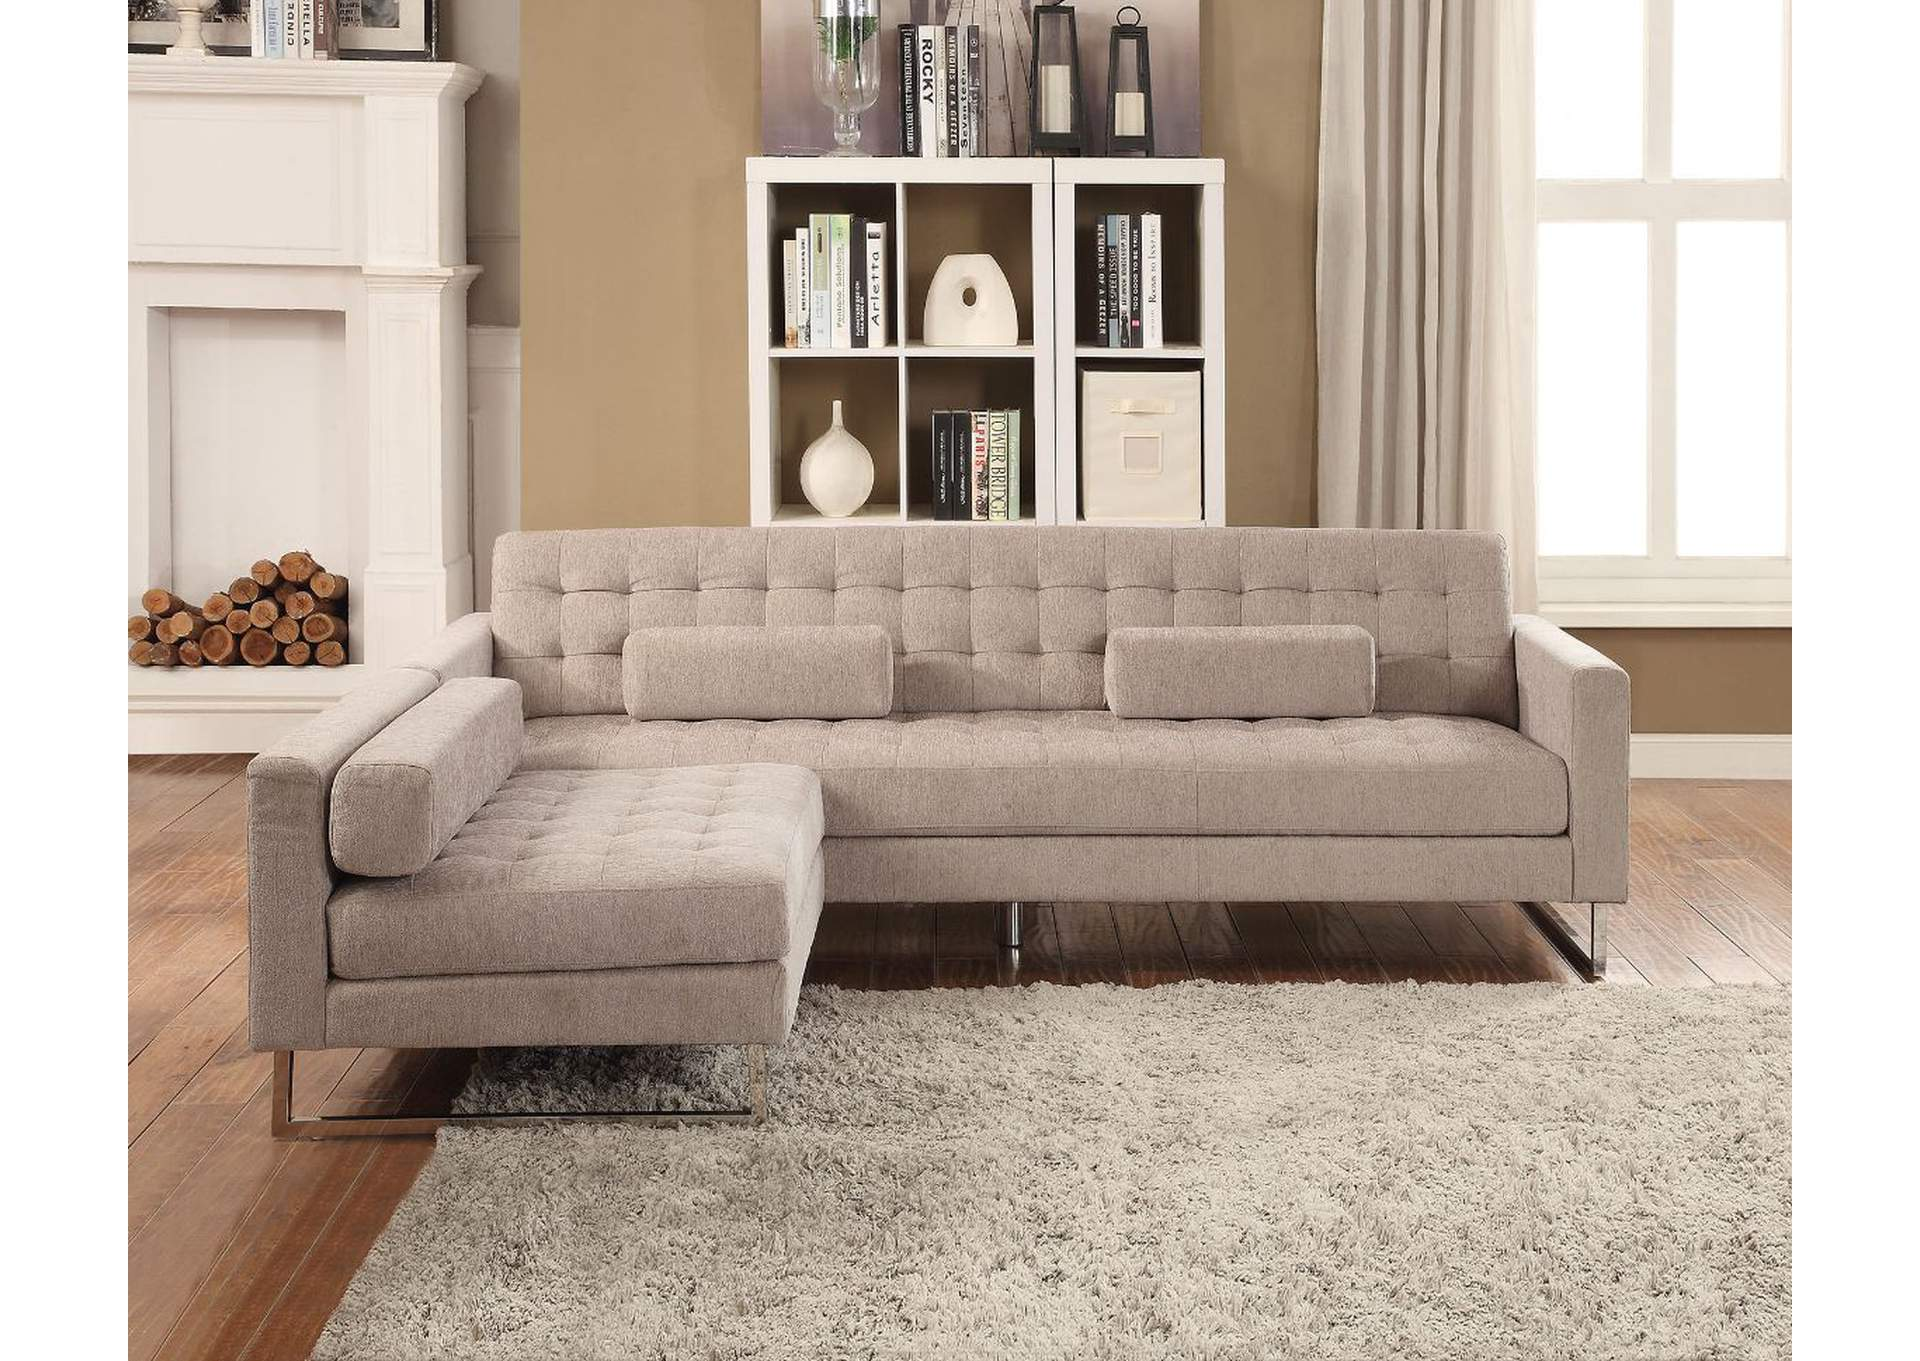 Sampson Beige Fabric Sofa,Acme